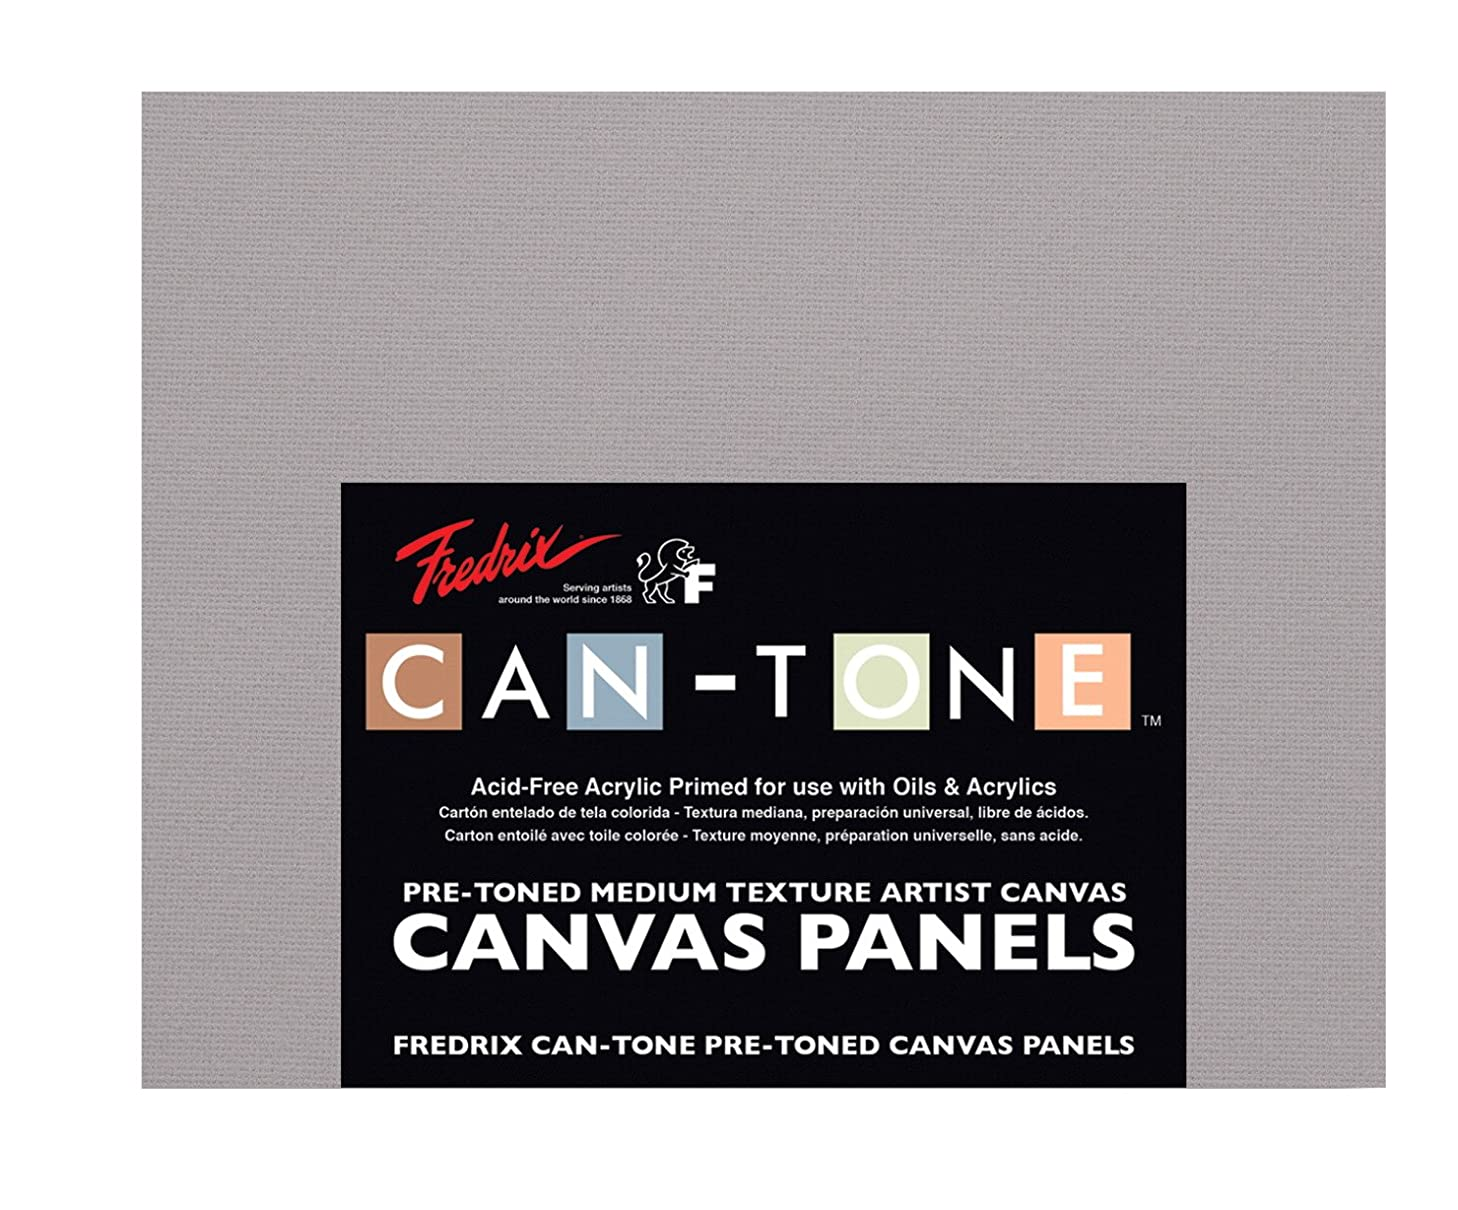 Fredrix Can-Tone Canvas Panels, Tara Gray, 8 x 10 Inches, Pack of 3